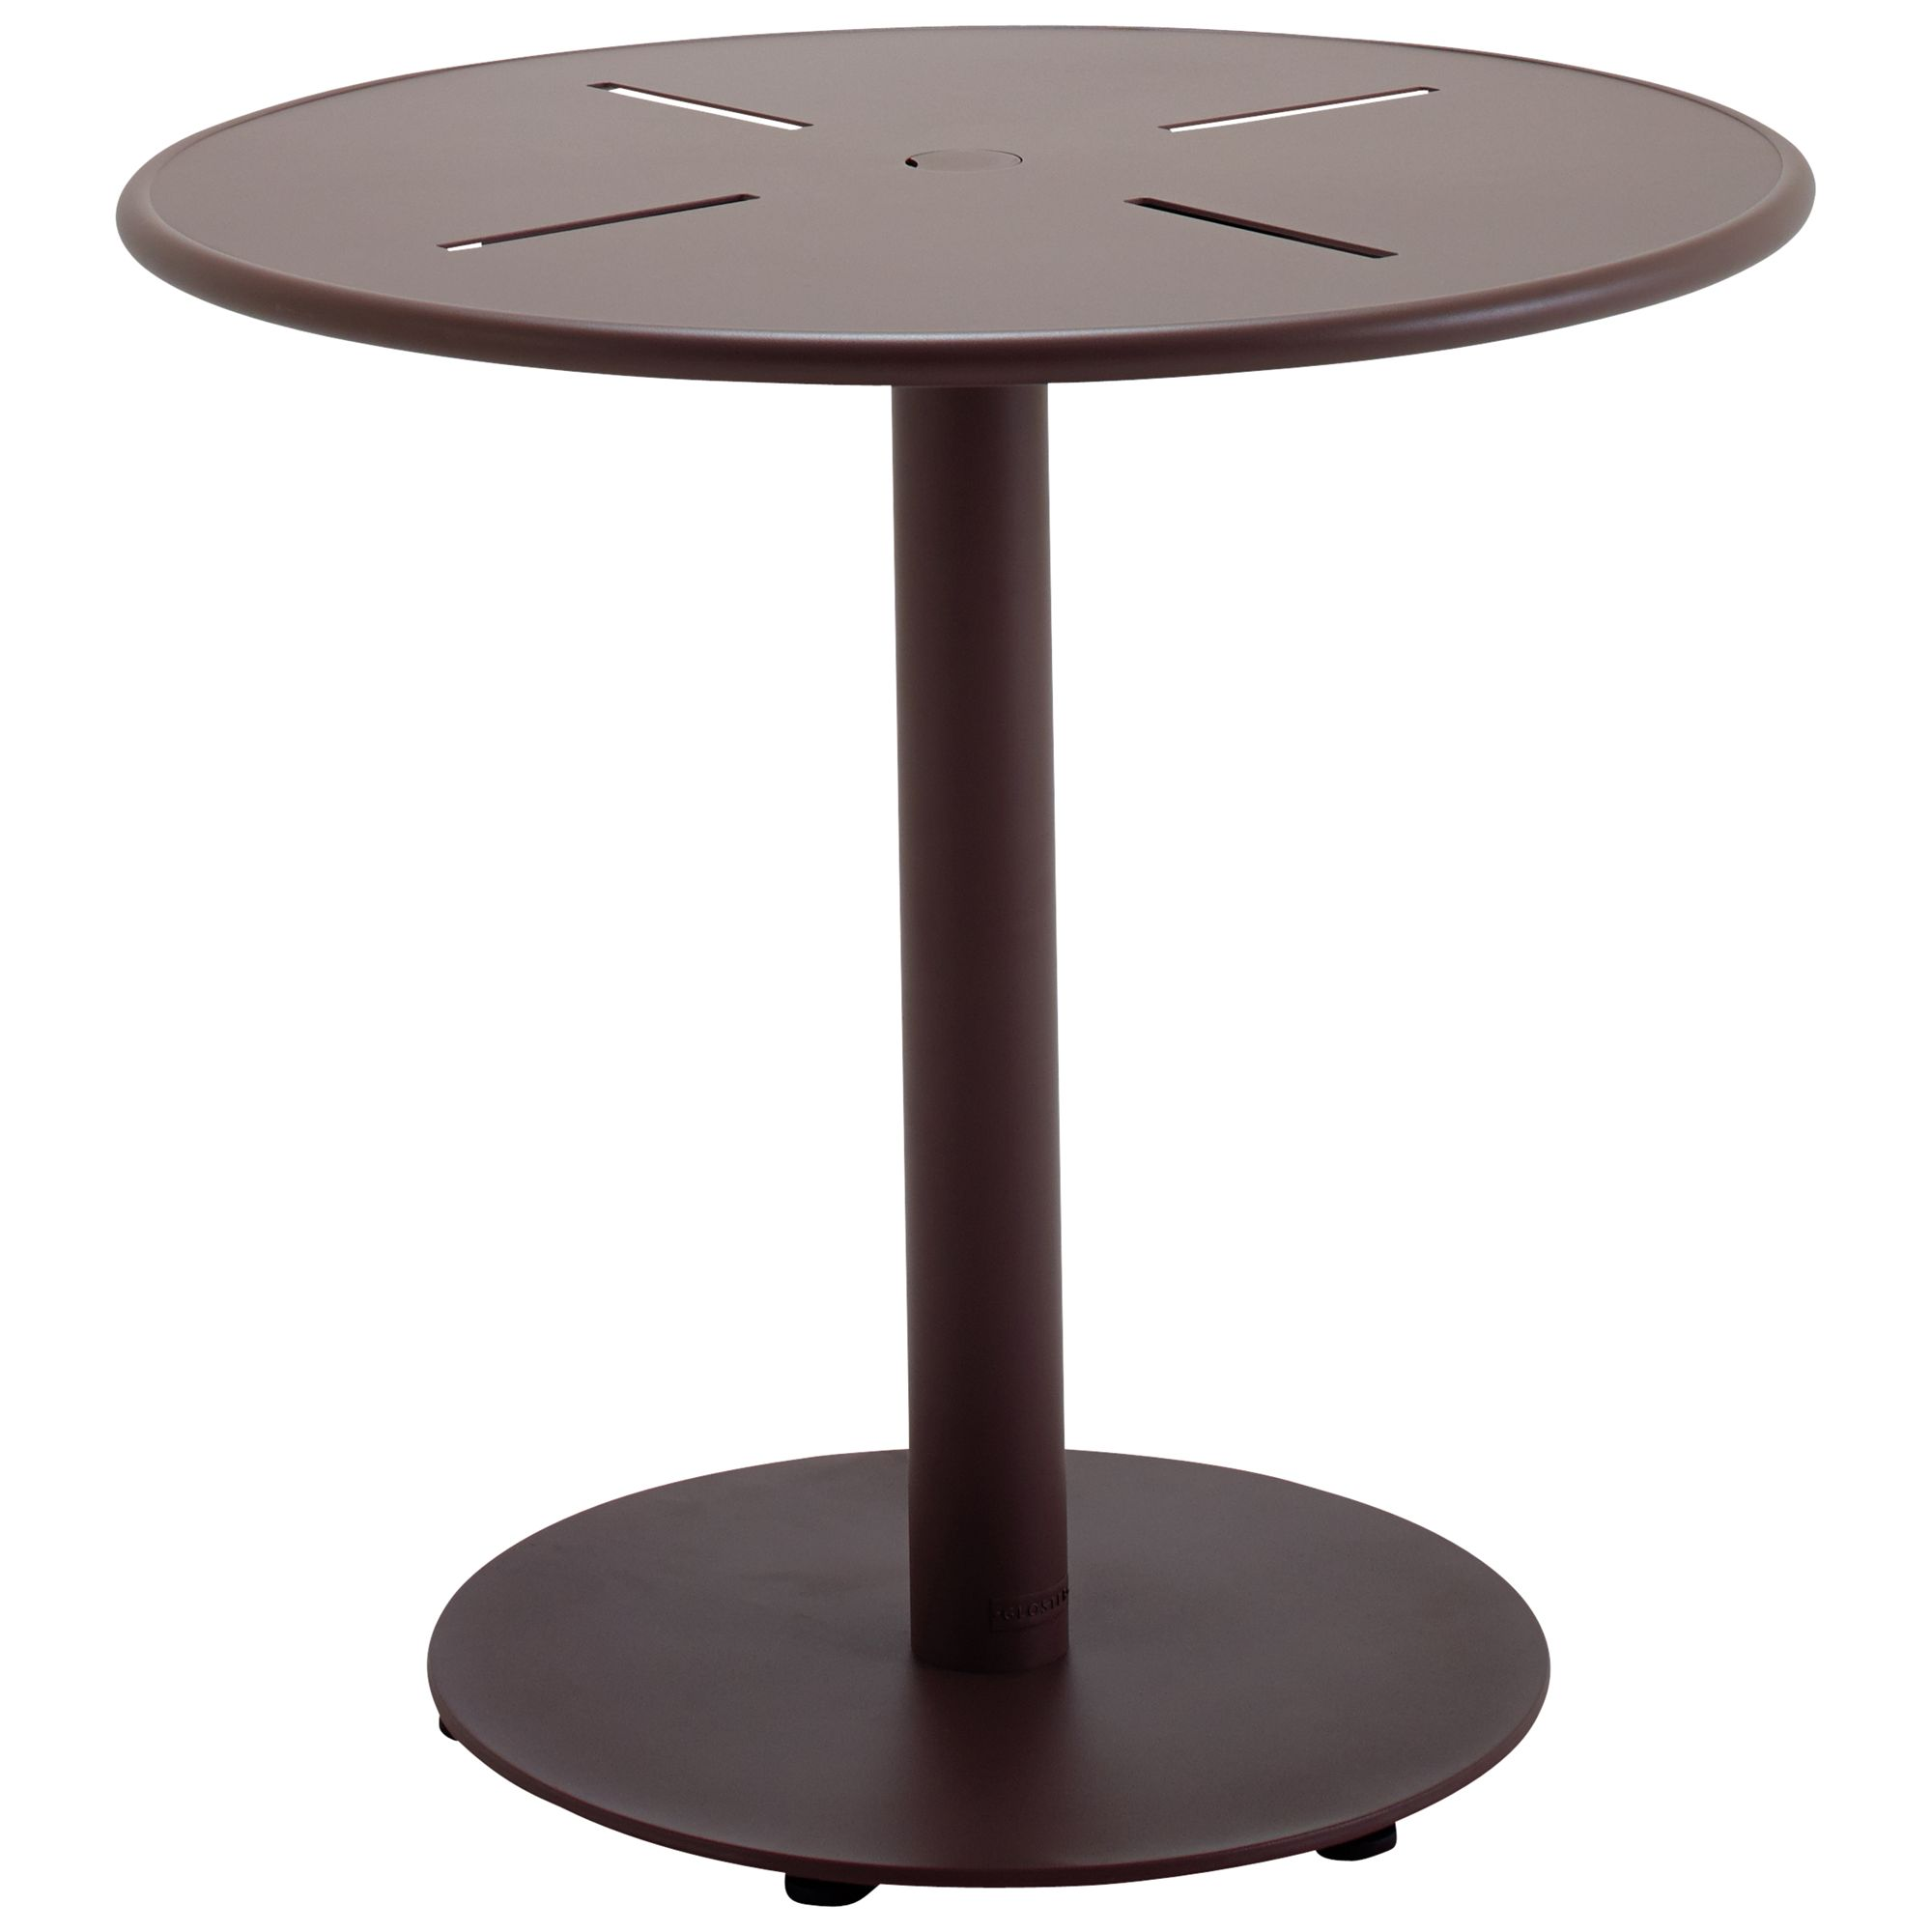 Gloster Furniture Nomad Round Dining Table, Taupe